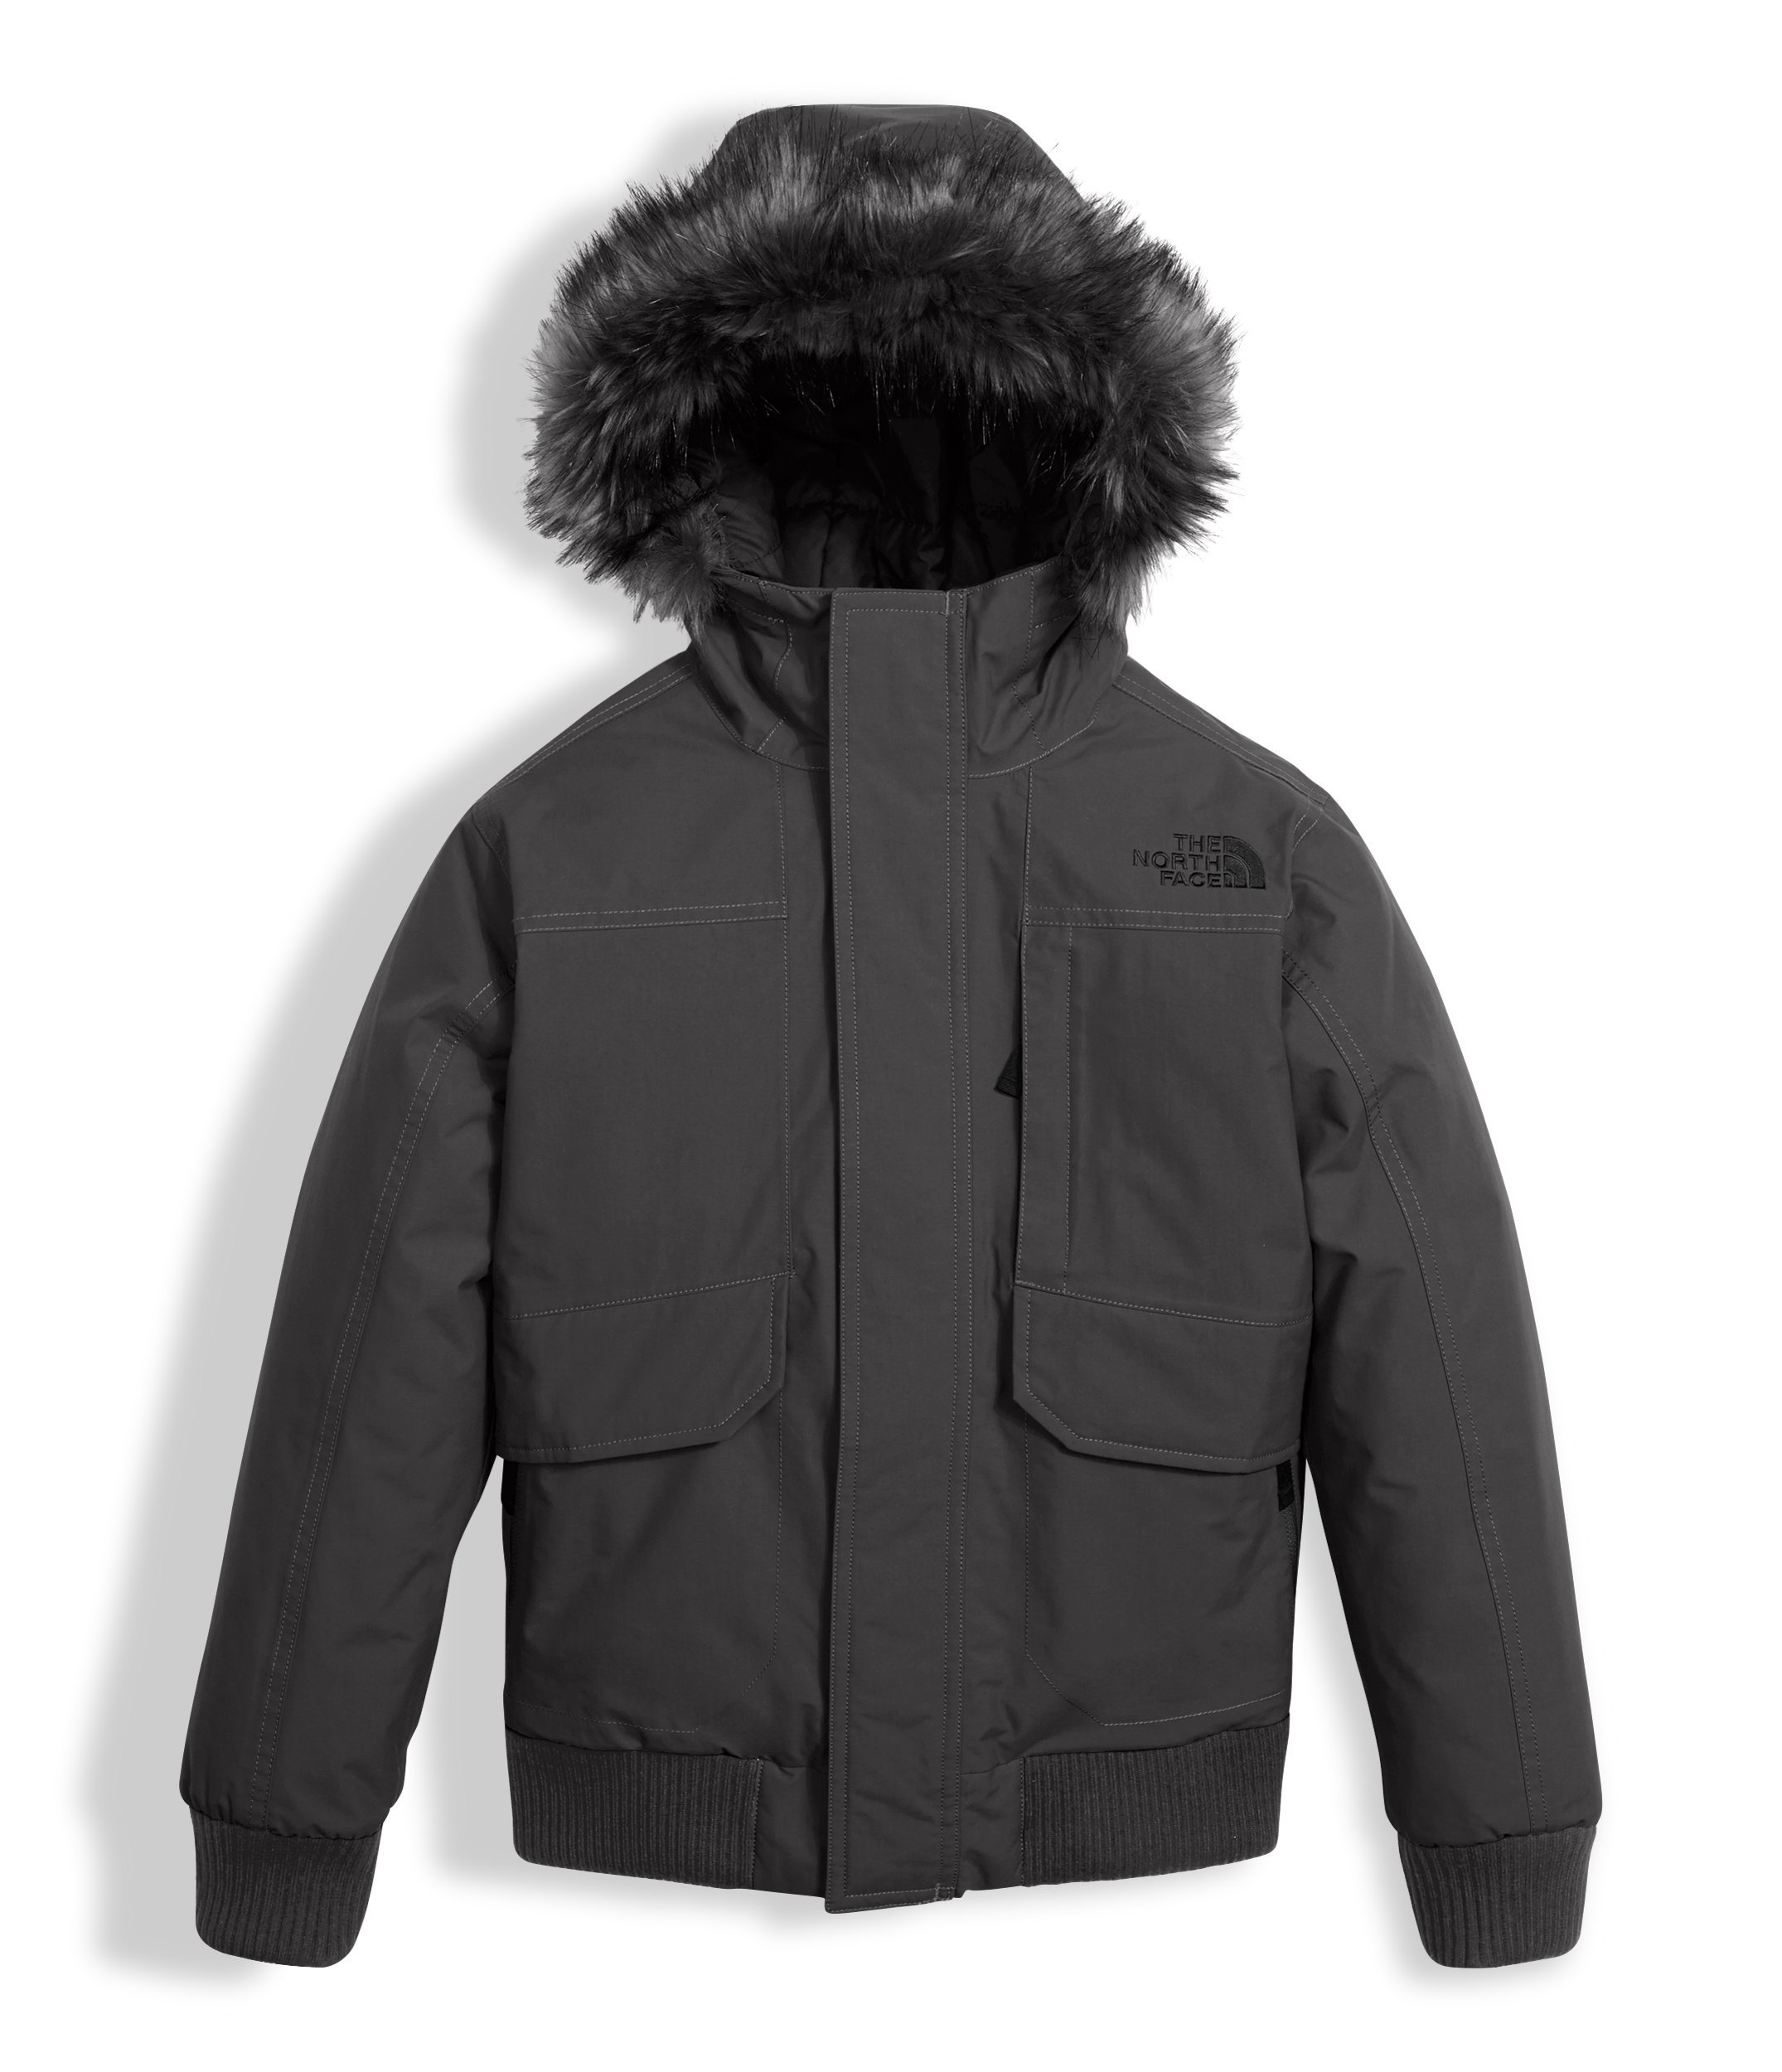 The North Face Boys Gotham Down Jacket Graphite Grey Heather (Large) by The North Face